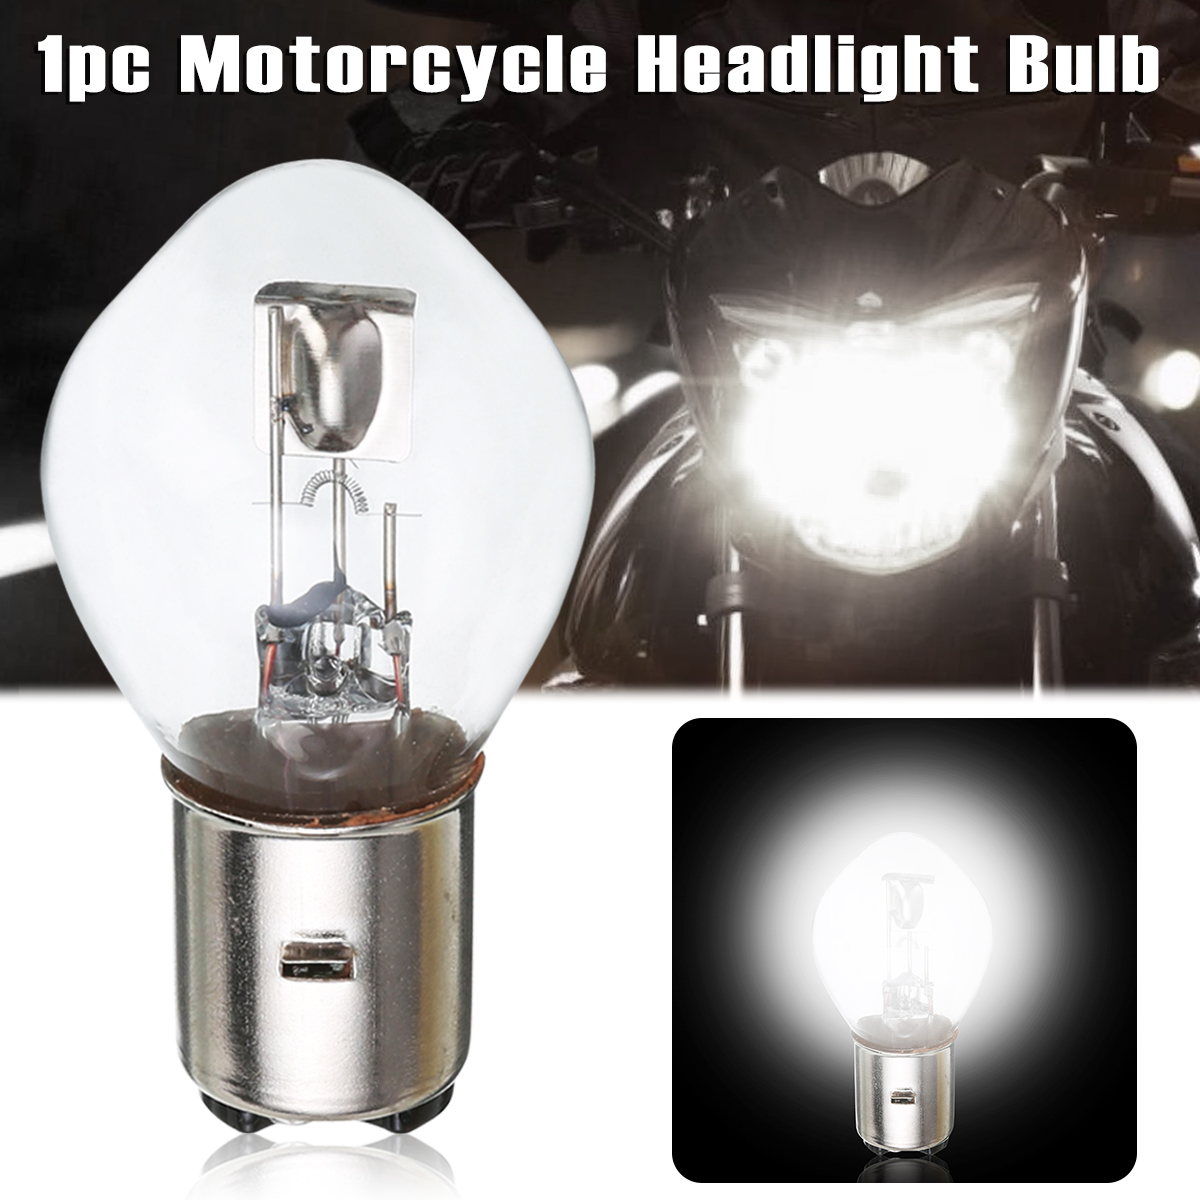 Home Treyues 1 Pc Ba20d H6 Motorcycle Headlight Dc12v 4cob Led Light Bulb White For Moped Scooter Atv Attractive Fashion